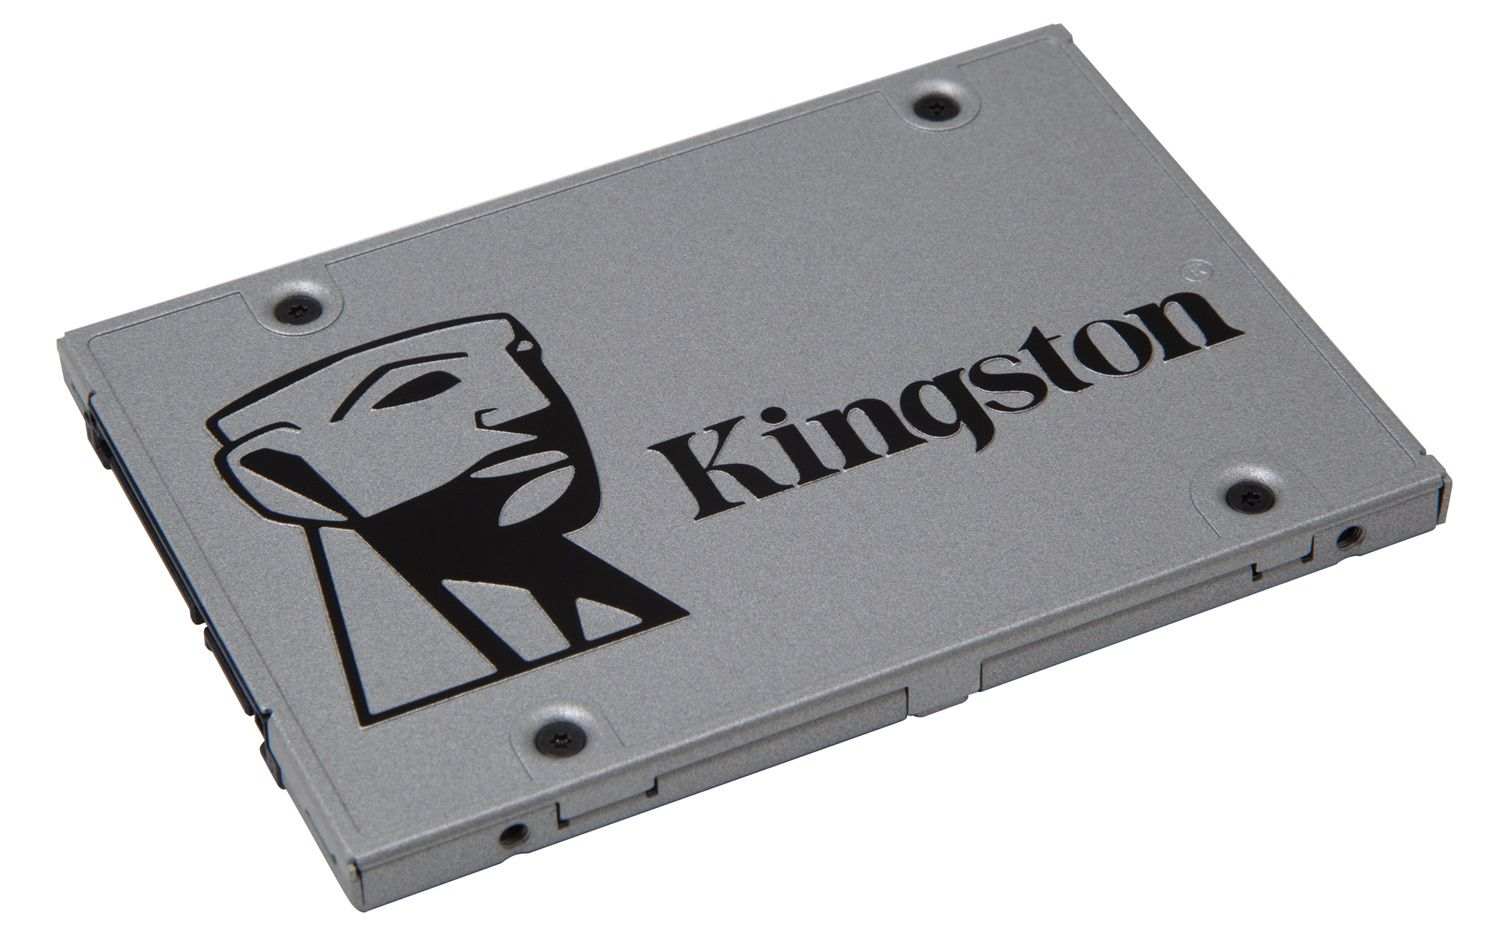 Kingston SSDNow UV400 480GB